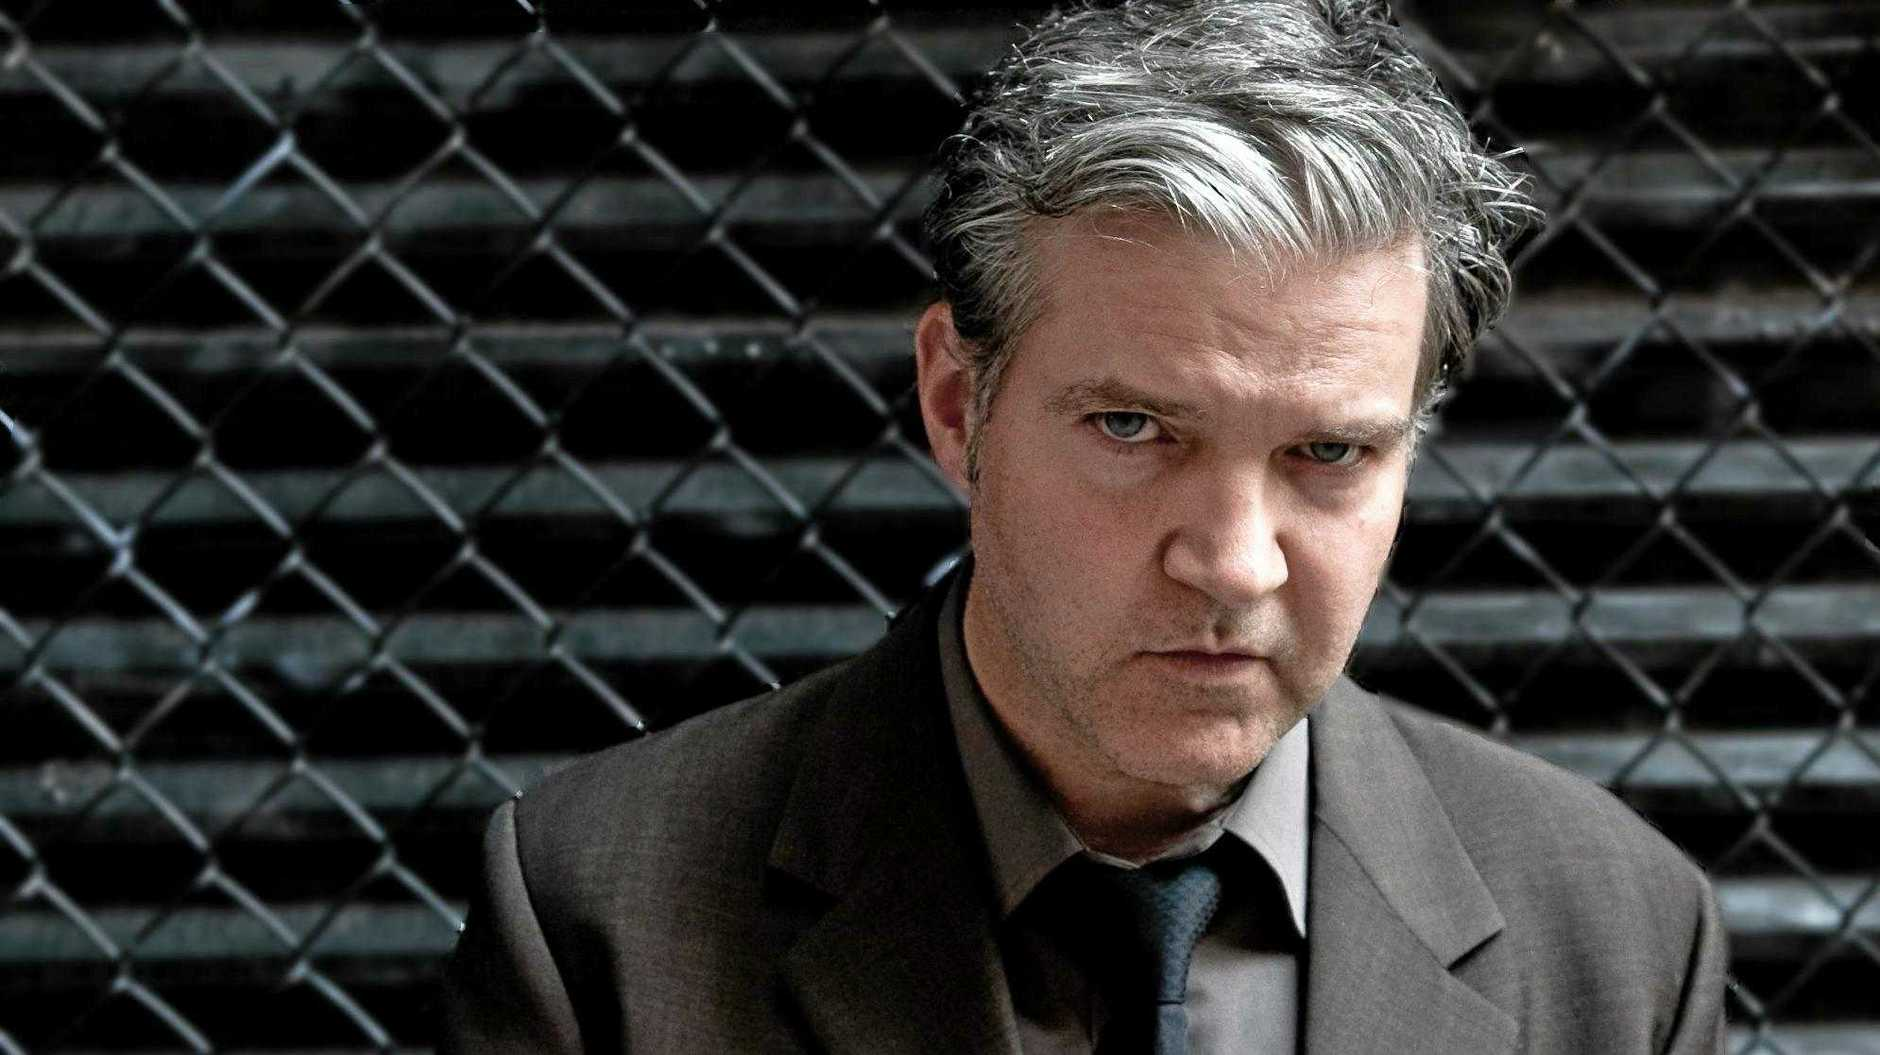 TOURING: Lloyd Cole is an English singer and songwriter, known for his role as lead singer of Lloyd Cole and the Commotions from 1984 to 1989, and for his subsequent solo work.